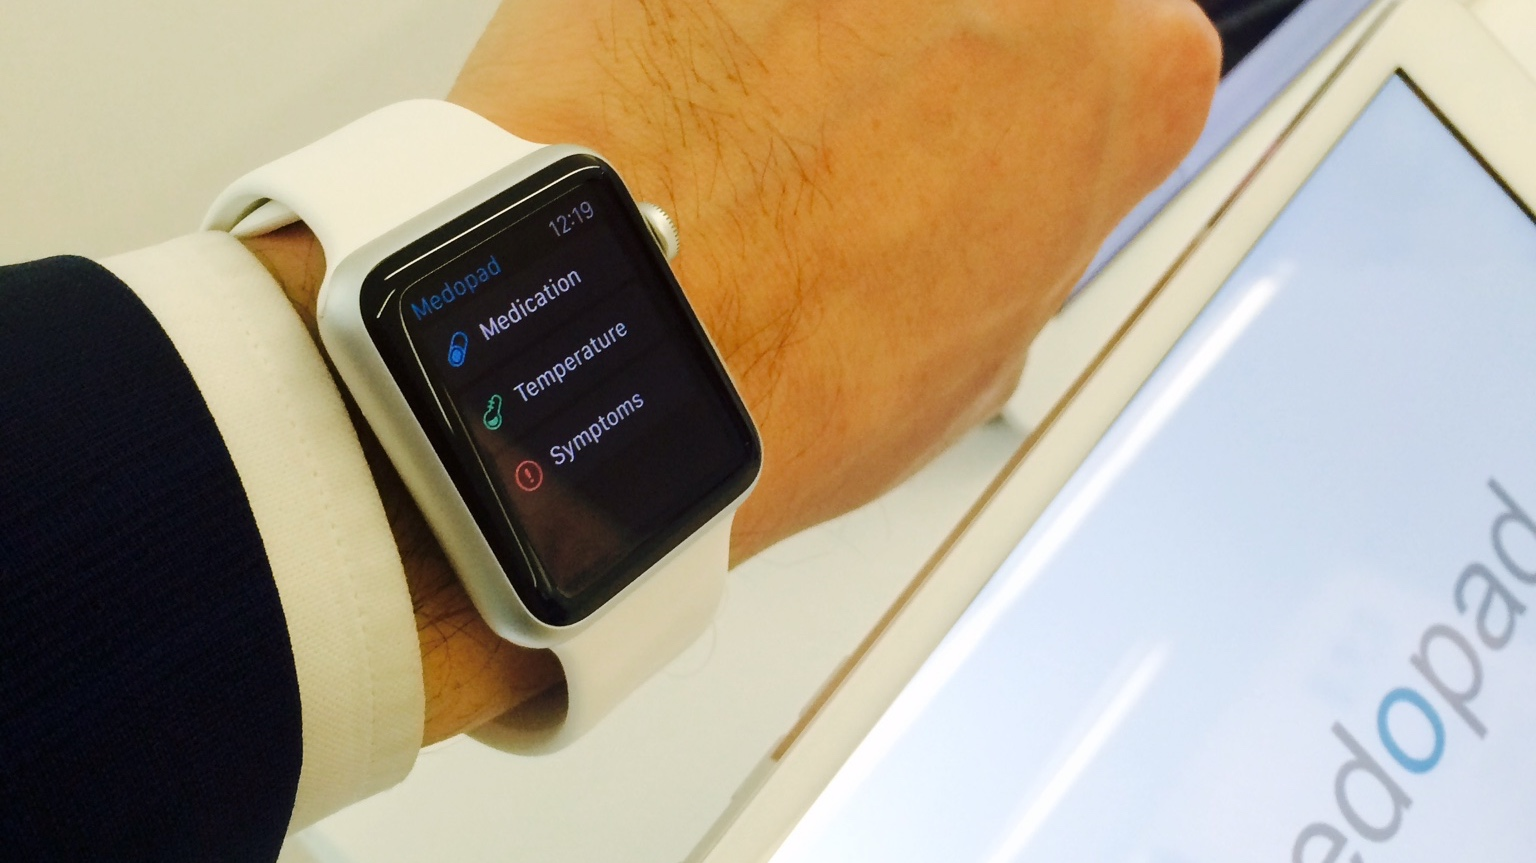 A cancer fighting Apple Watch app